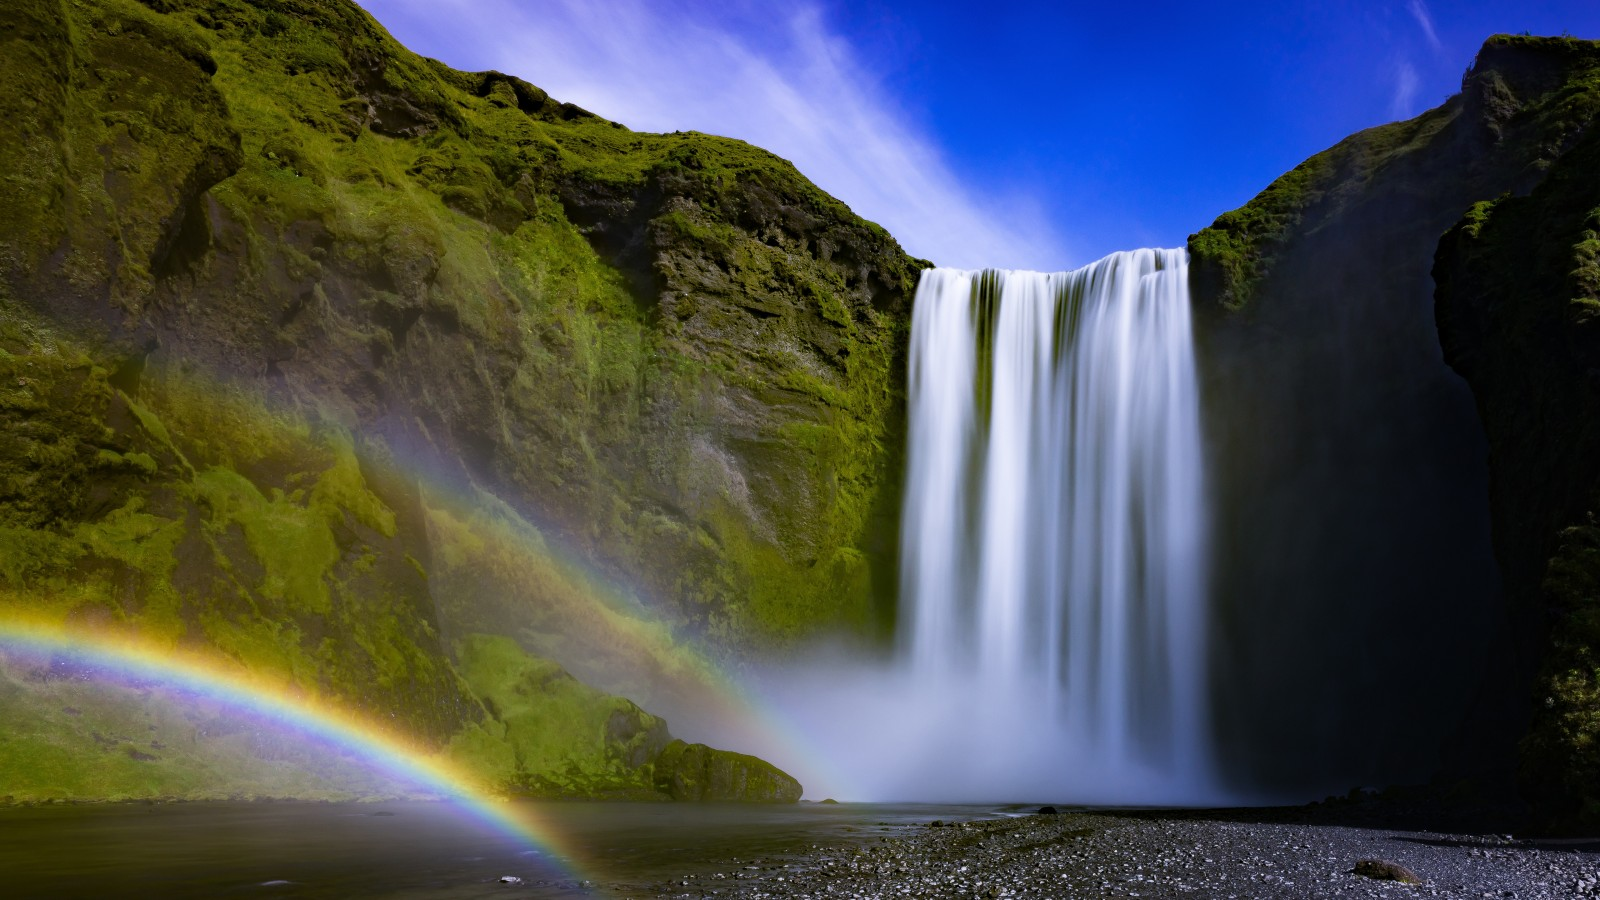 3d Full Hd Wallpaper For Android Skogafoss Waterfall Iceland 4k Wallpapers Hd Wallpapers